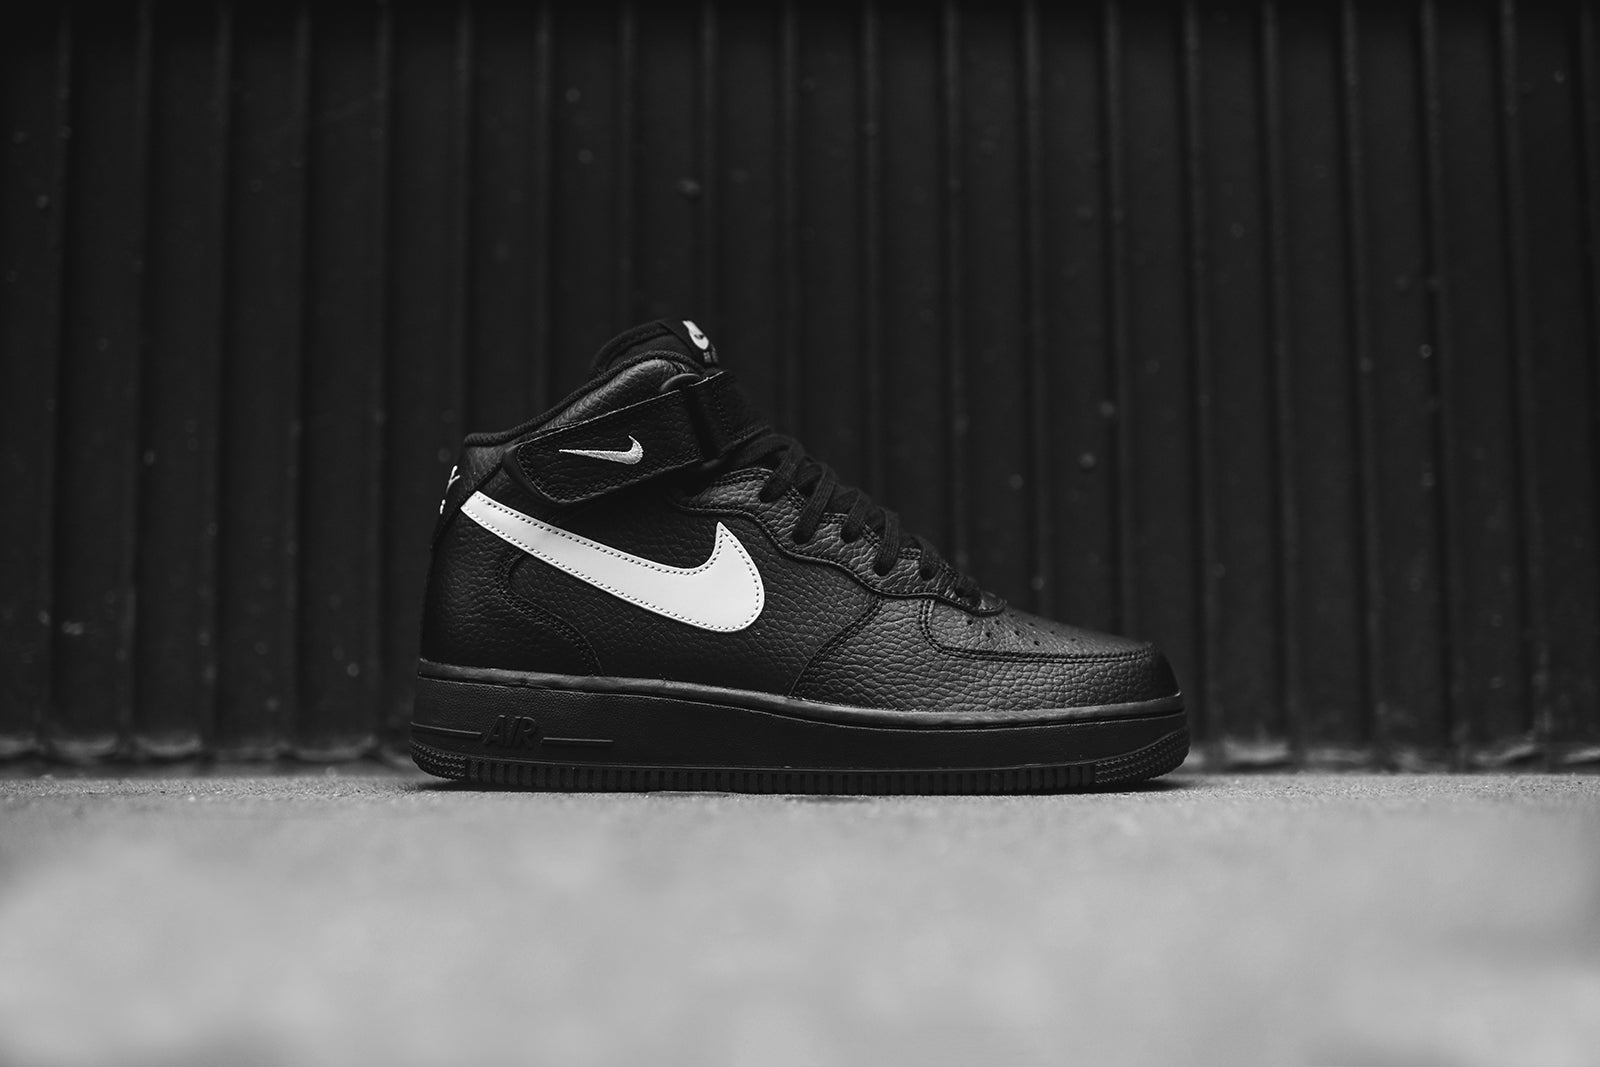 Footlocker rabais eastbay en ligne Nike Air Force 1 Mid 07 Dessins En Noir Et Blanc boutique en ligne 3AbGCH